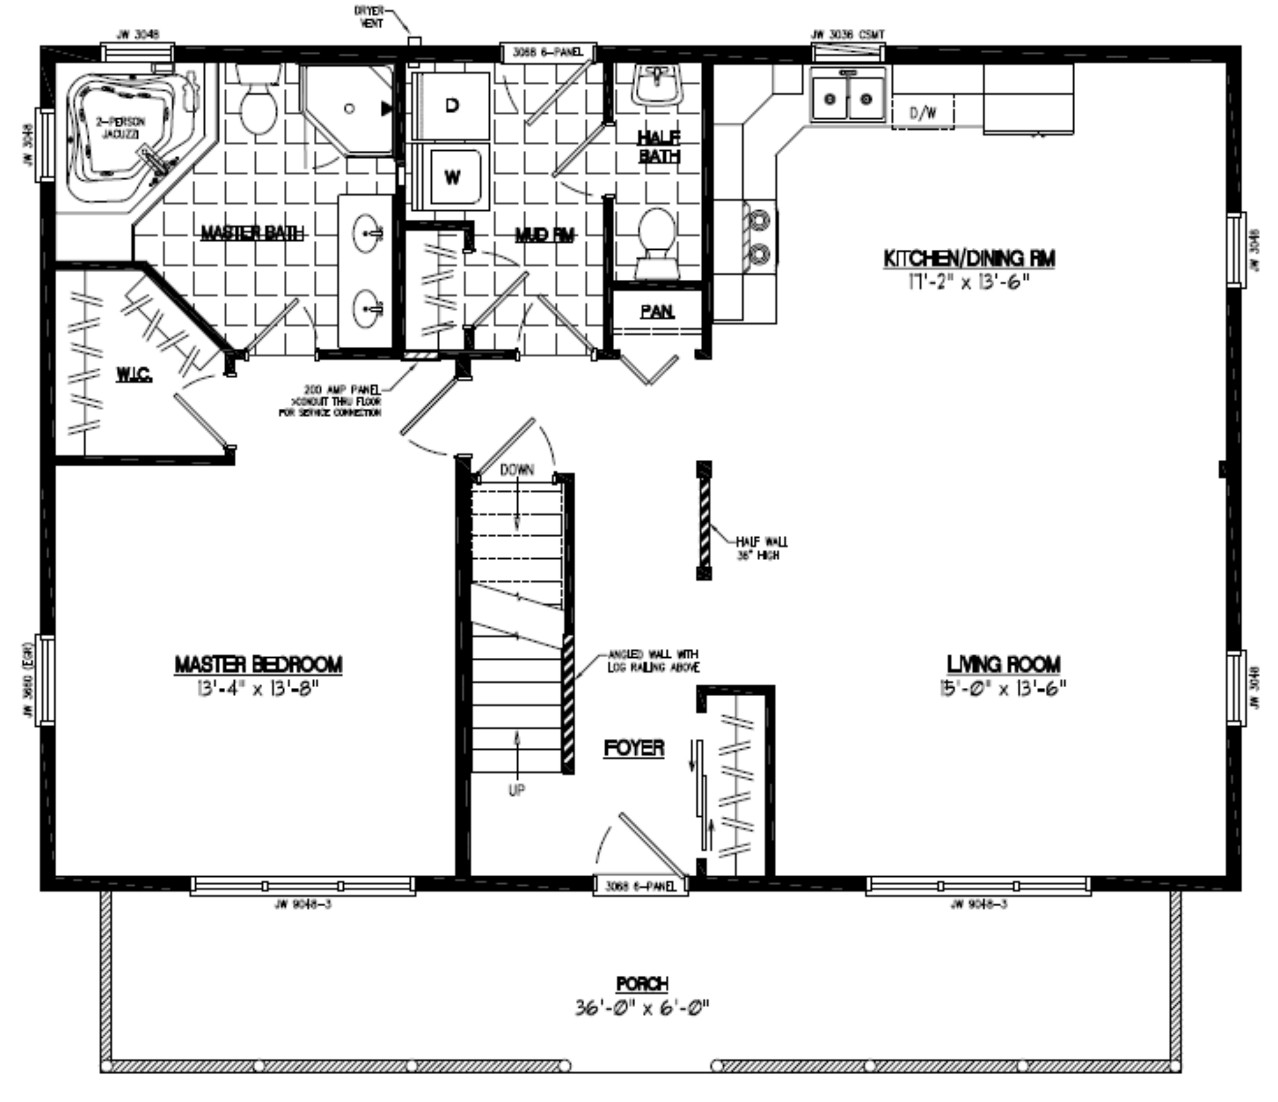 30 x 36 house plans for 28x36 cabin plans